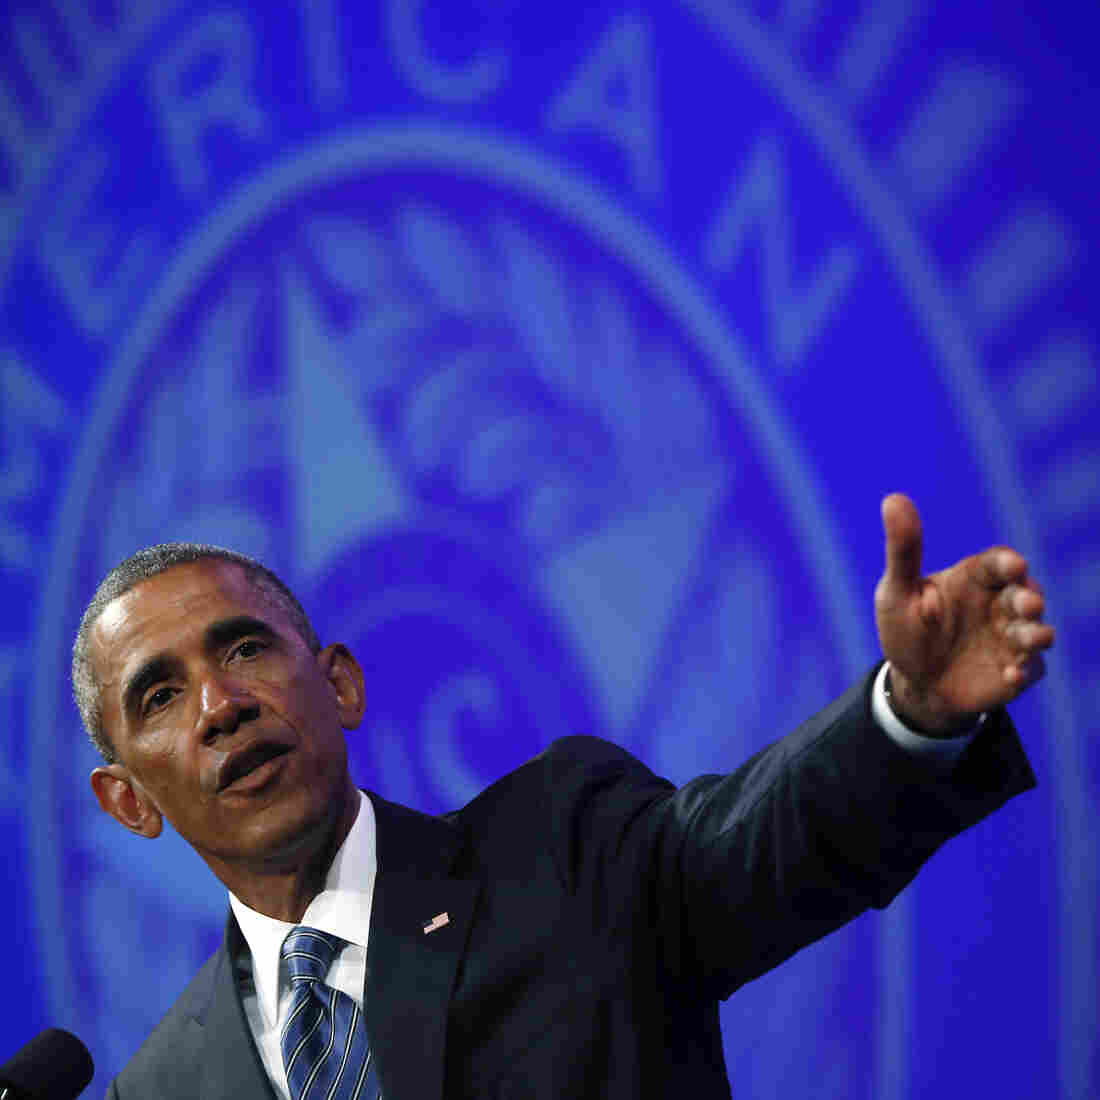 """During a speech at the American Legion's National Convention on Tuesday, President Obama again called the extremist group the Islamic State a """"cancer."""""""